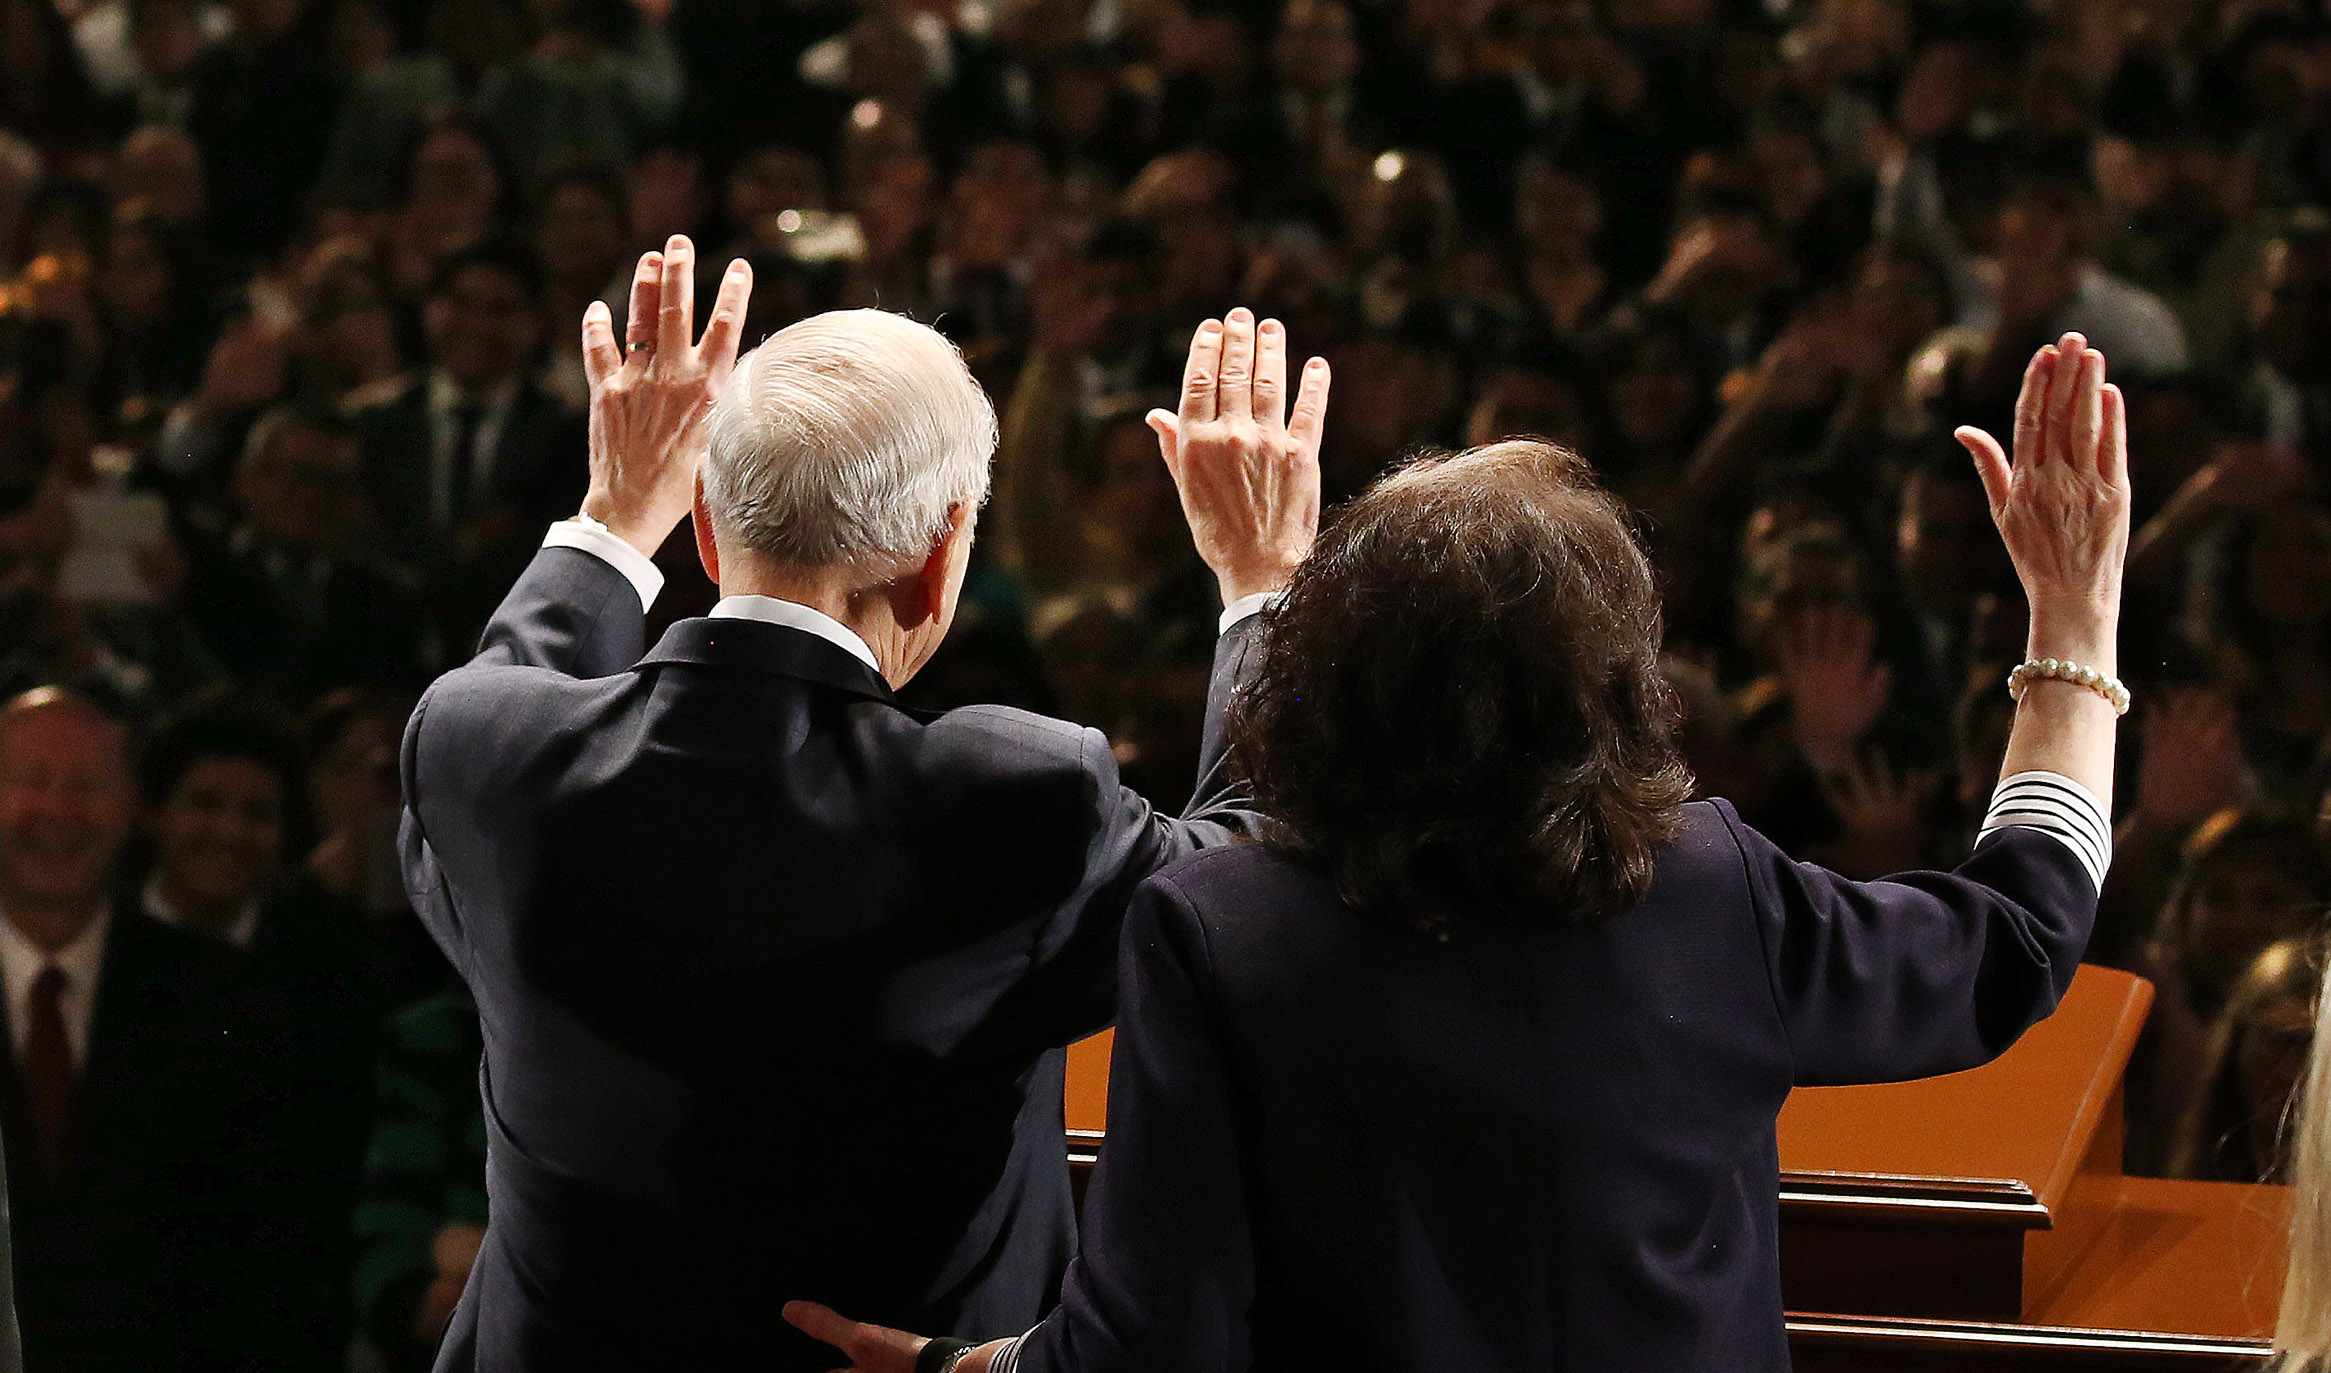 President Russell M. Nelson and his wife, Sister Wendy Nelson, wave to attendees after a devotional in Lima, Peru, on Oct. 20, 2018.